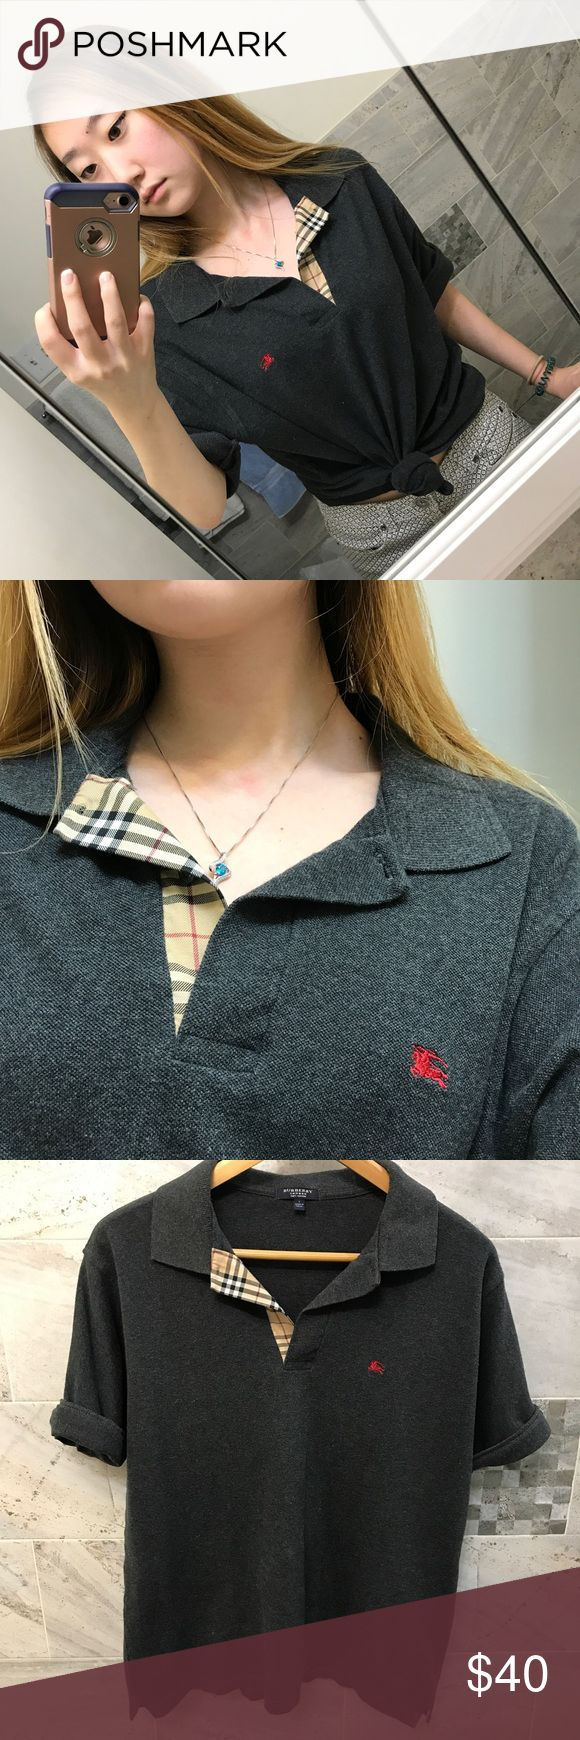 Burberry Gray V-Neck Polo Shirt So cute vintage Burberry polo shirt! Obsessed with the pattern on the collar and looks good tied at the bottom. It's a size large but can fit various sizes. Burberry Tops Tees - Short Sleeve